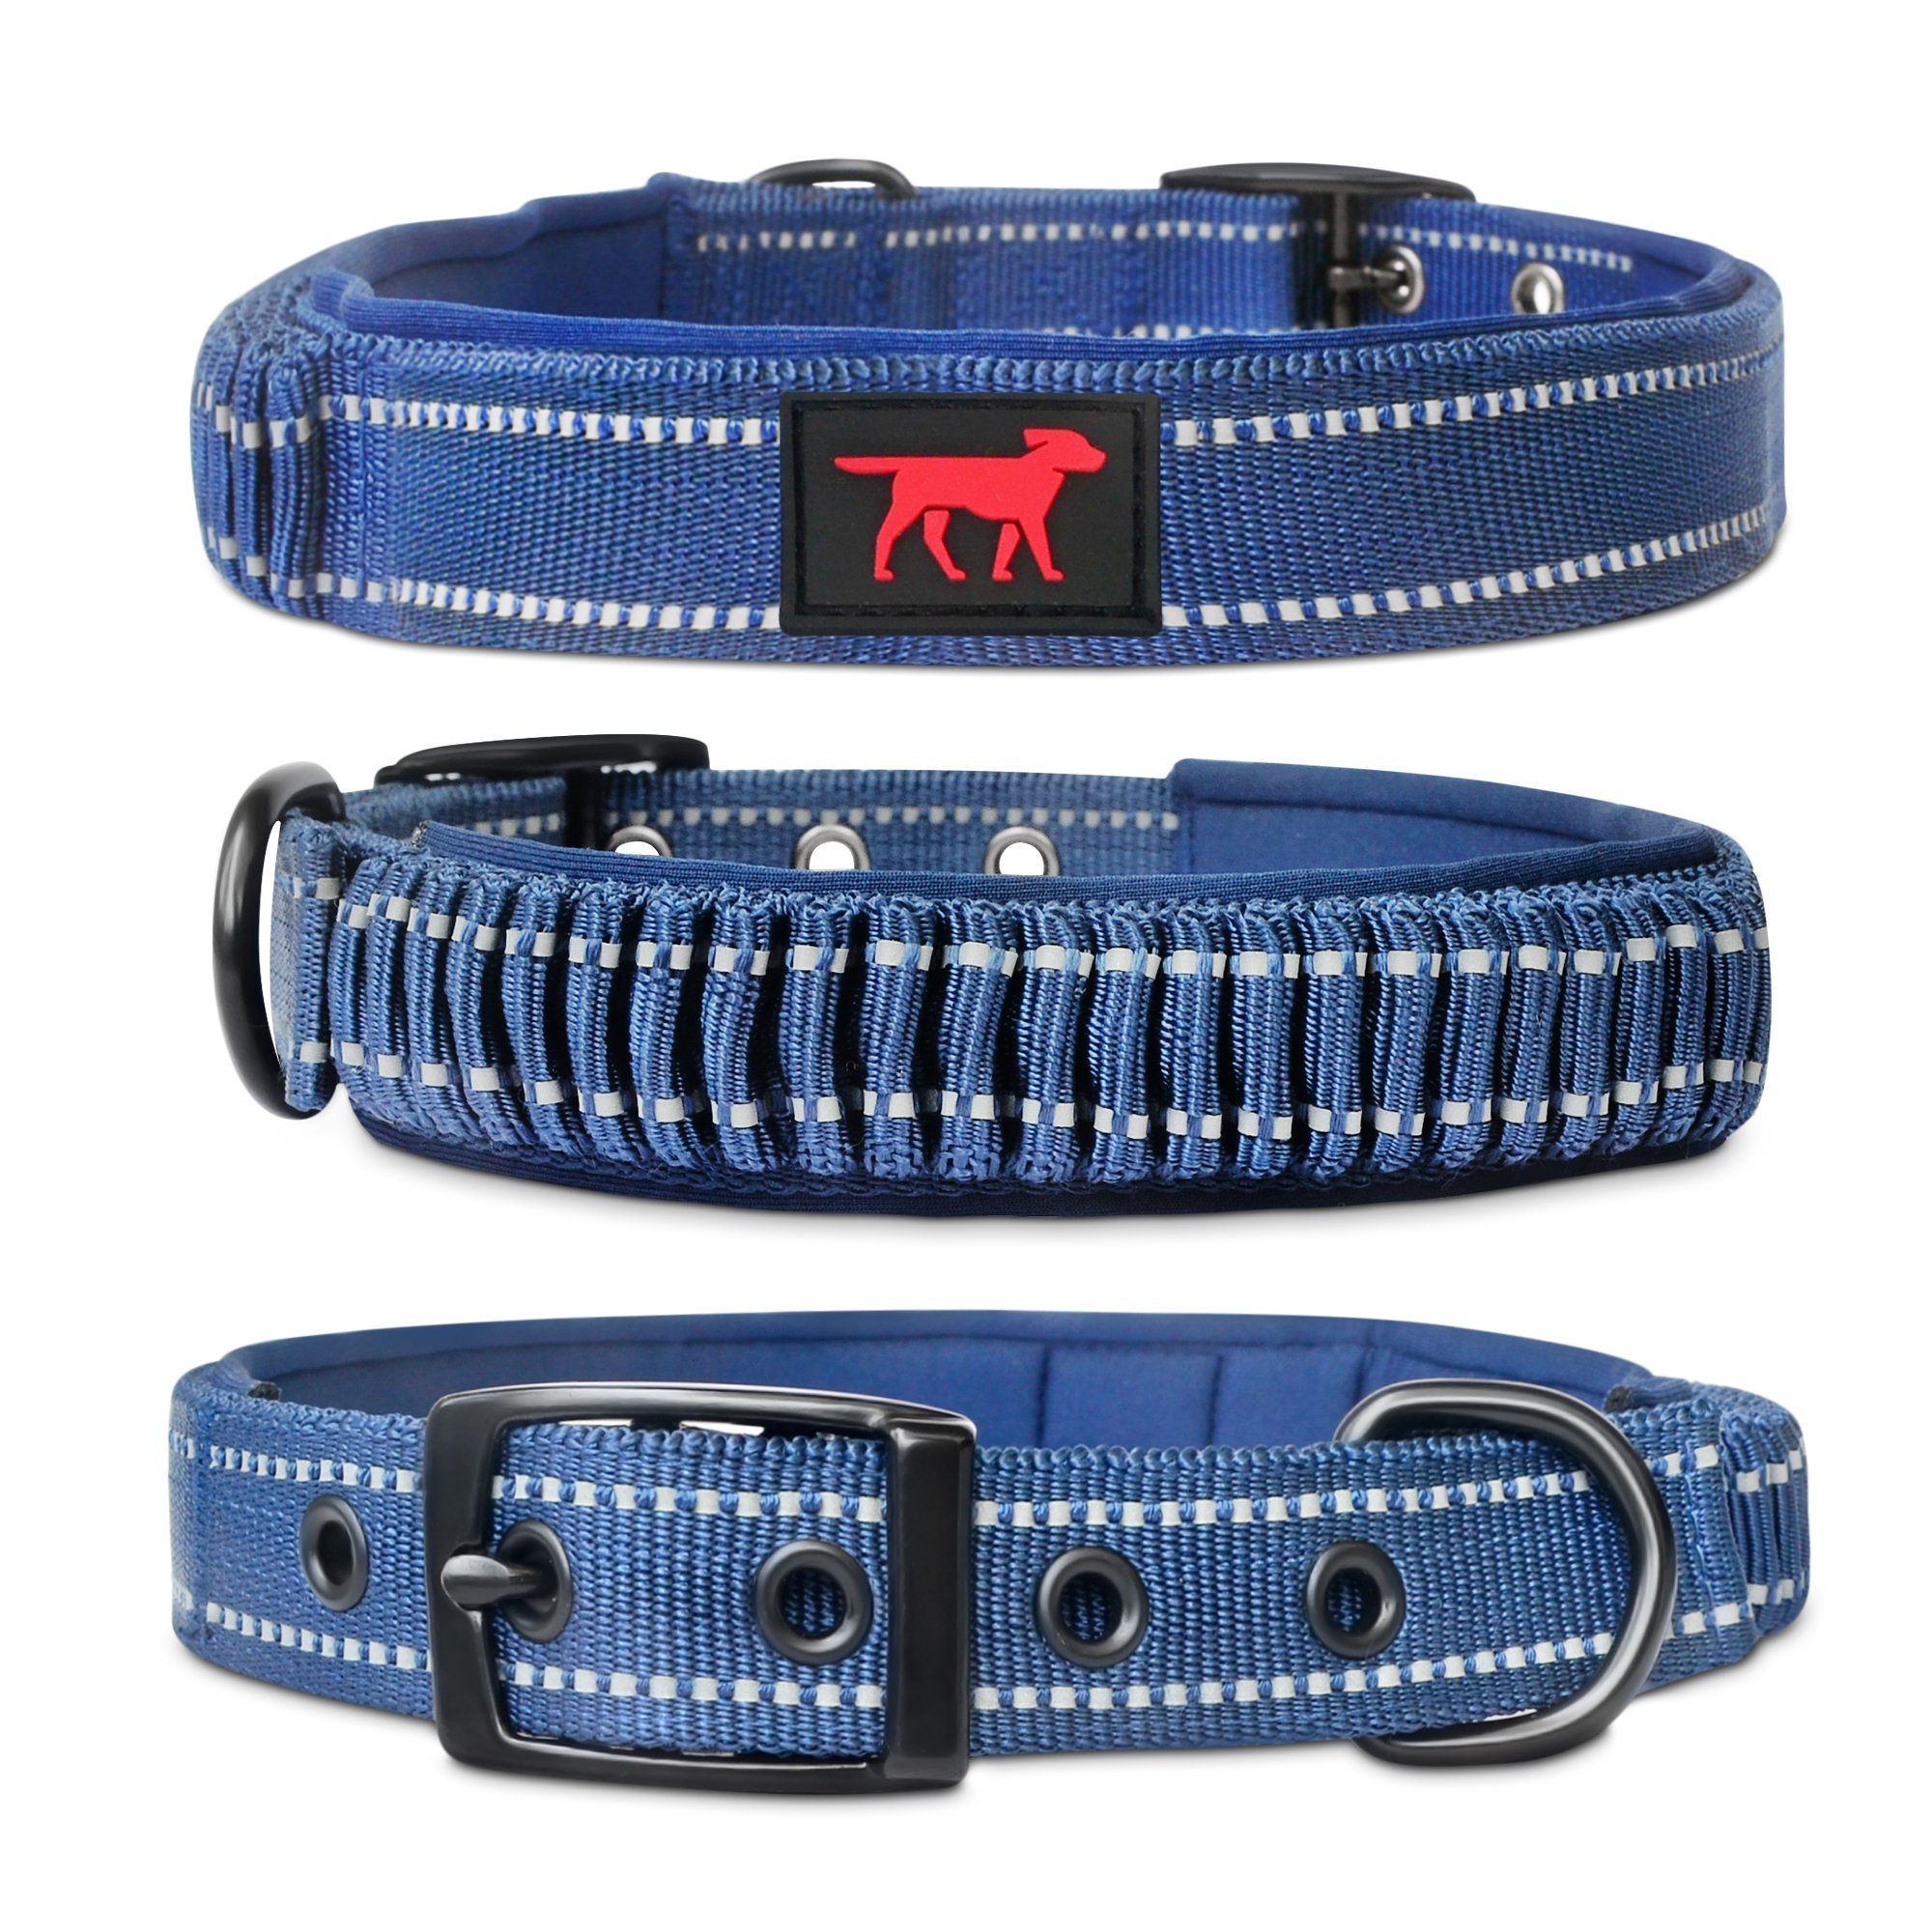 Heavy Duty Dog Collar With Handle | Ballistic Nylon Heavy Duty Collar | Padded Reflective Dog Collar With Adjustable Stainless Steel Hardware | Easy Sizing for All Breeds (Extra Large, Midnight Blue)